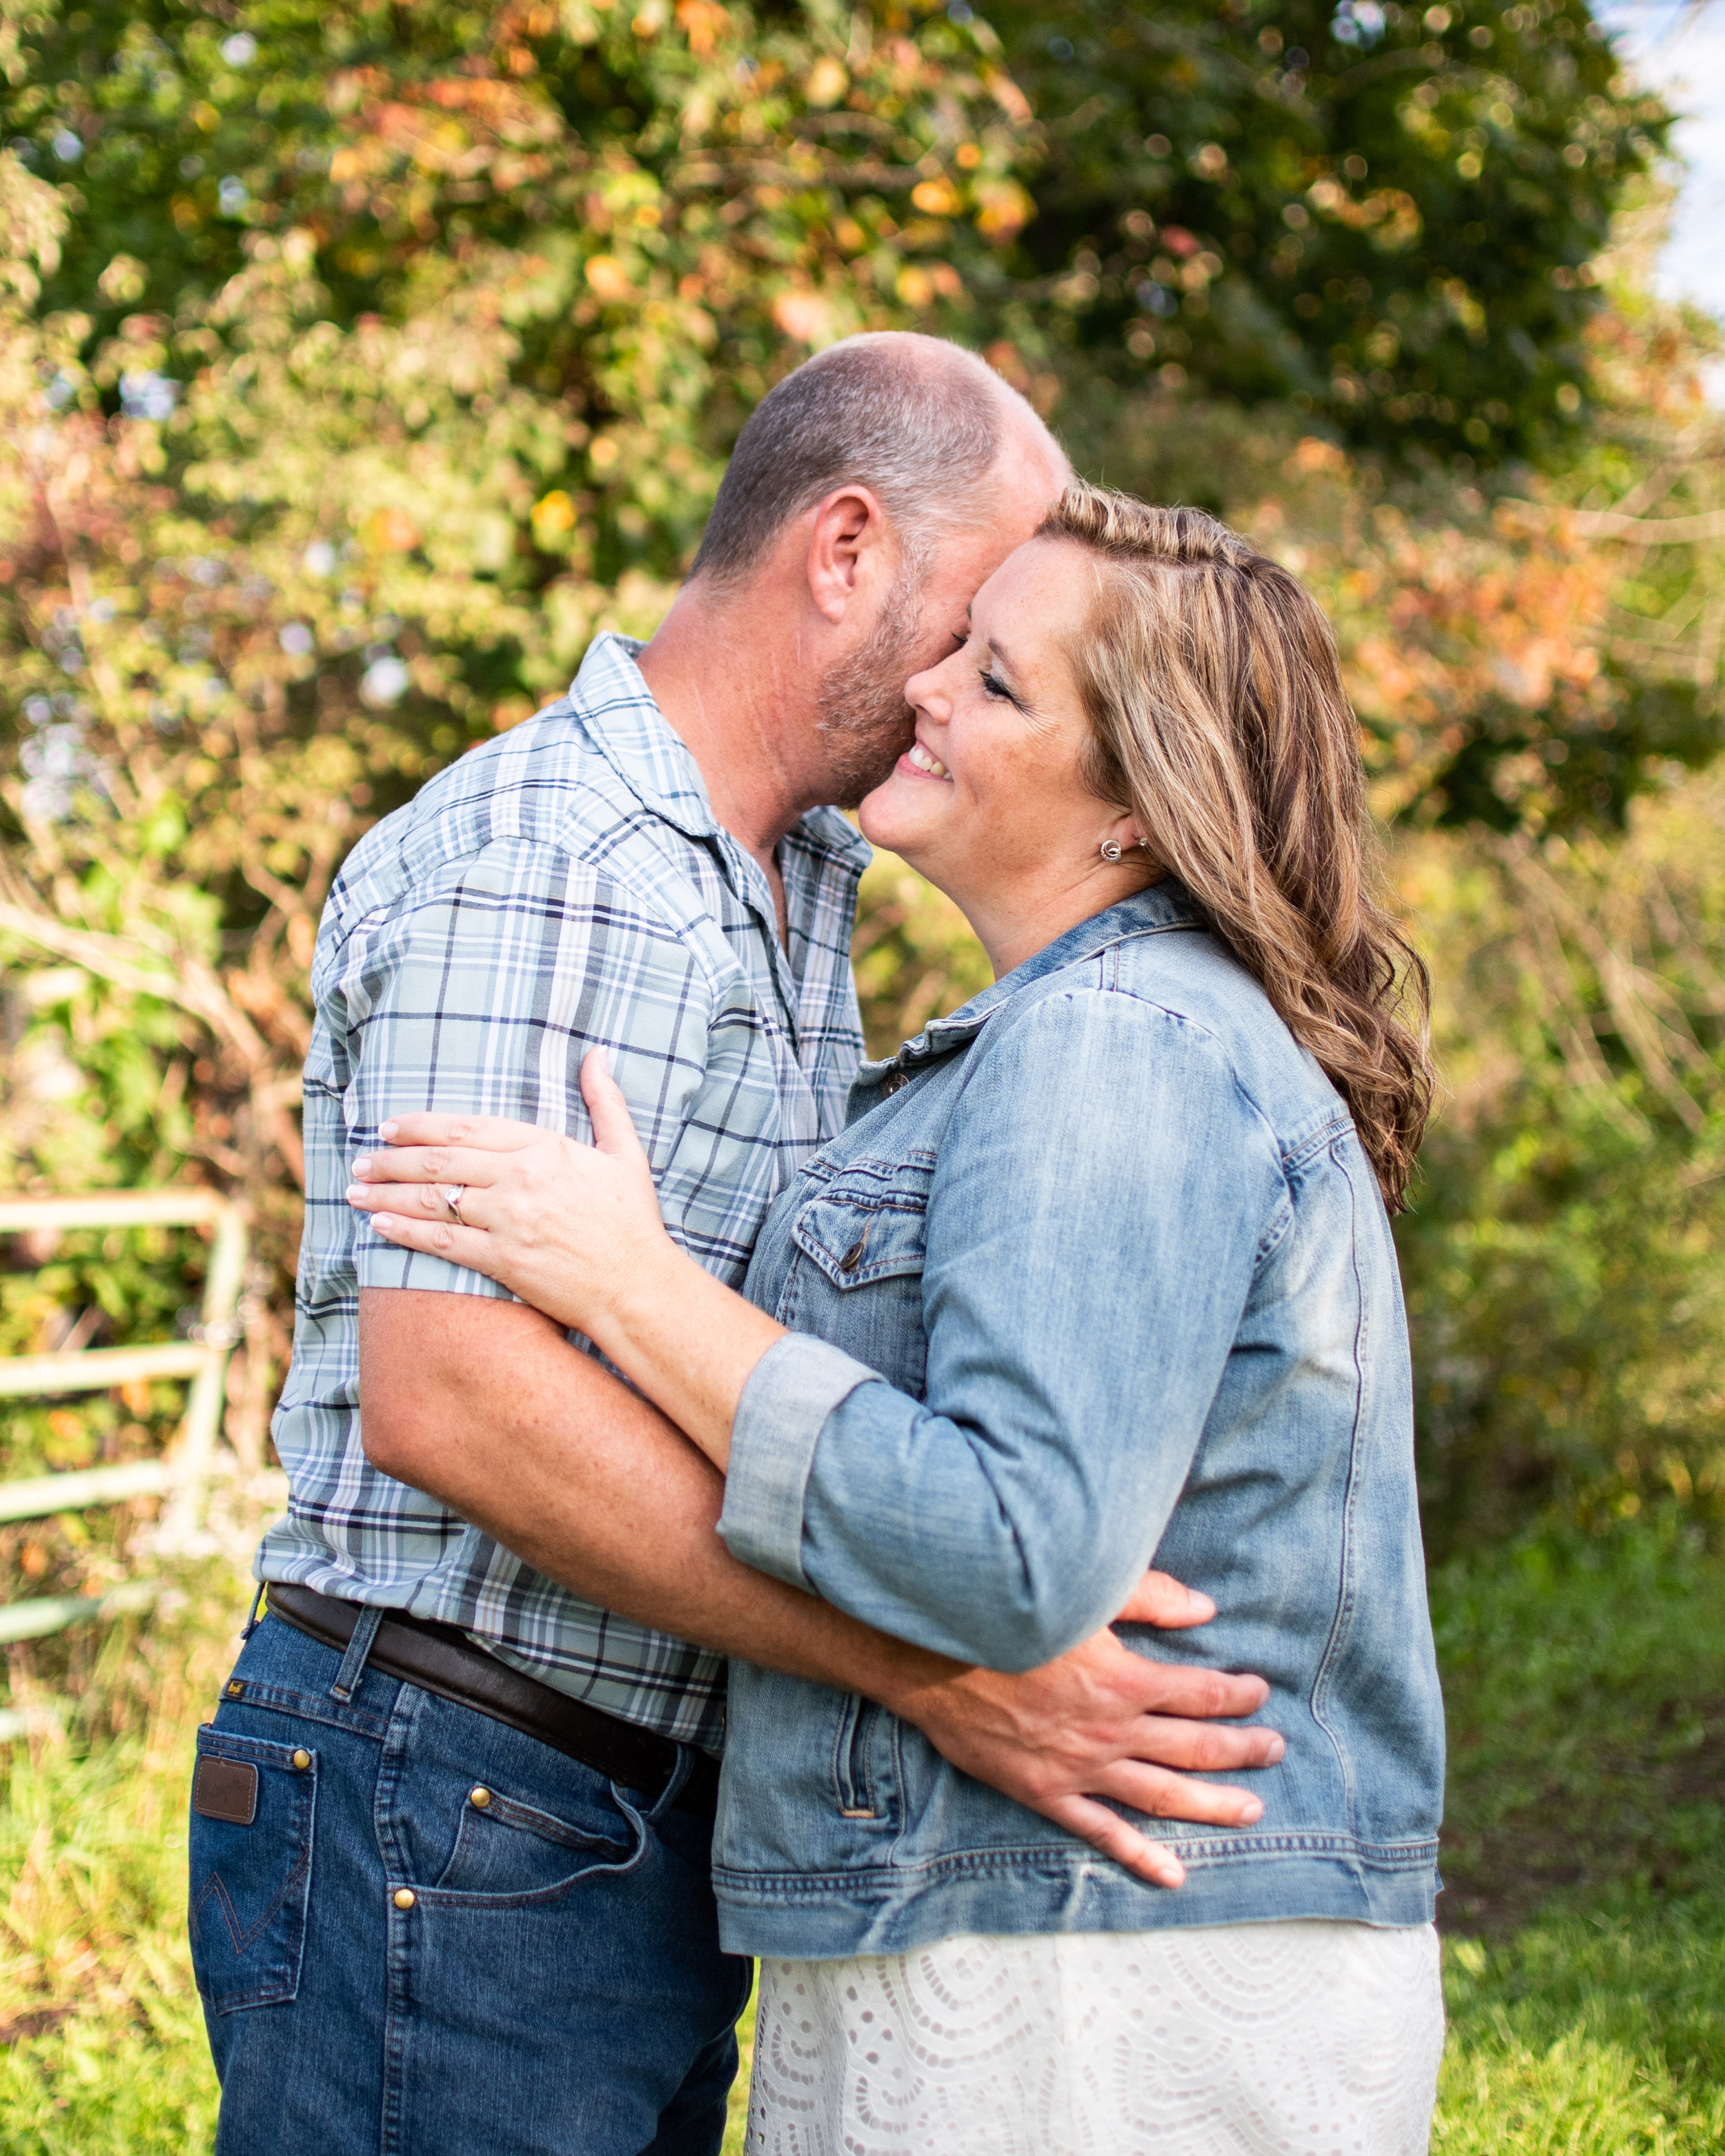 kyla jo photography engagement photographer muncie indiana